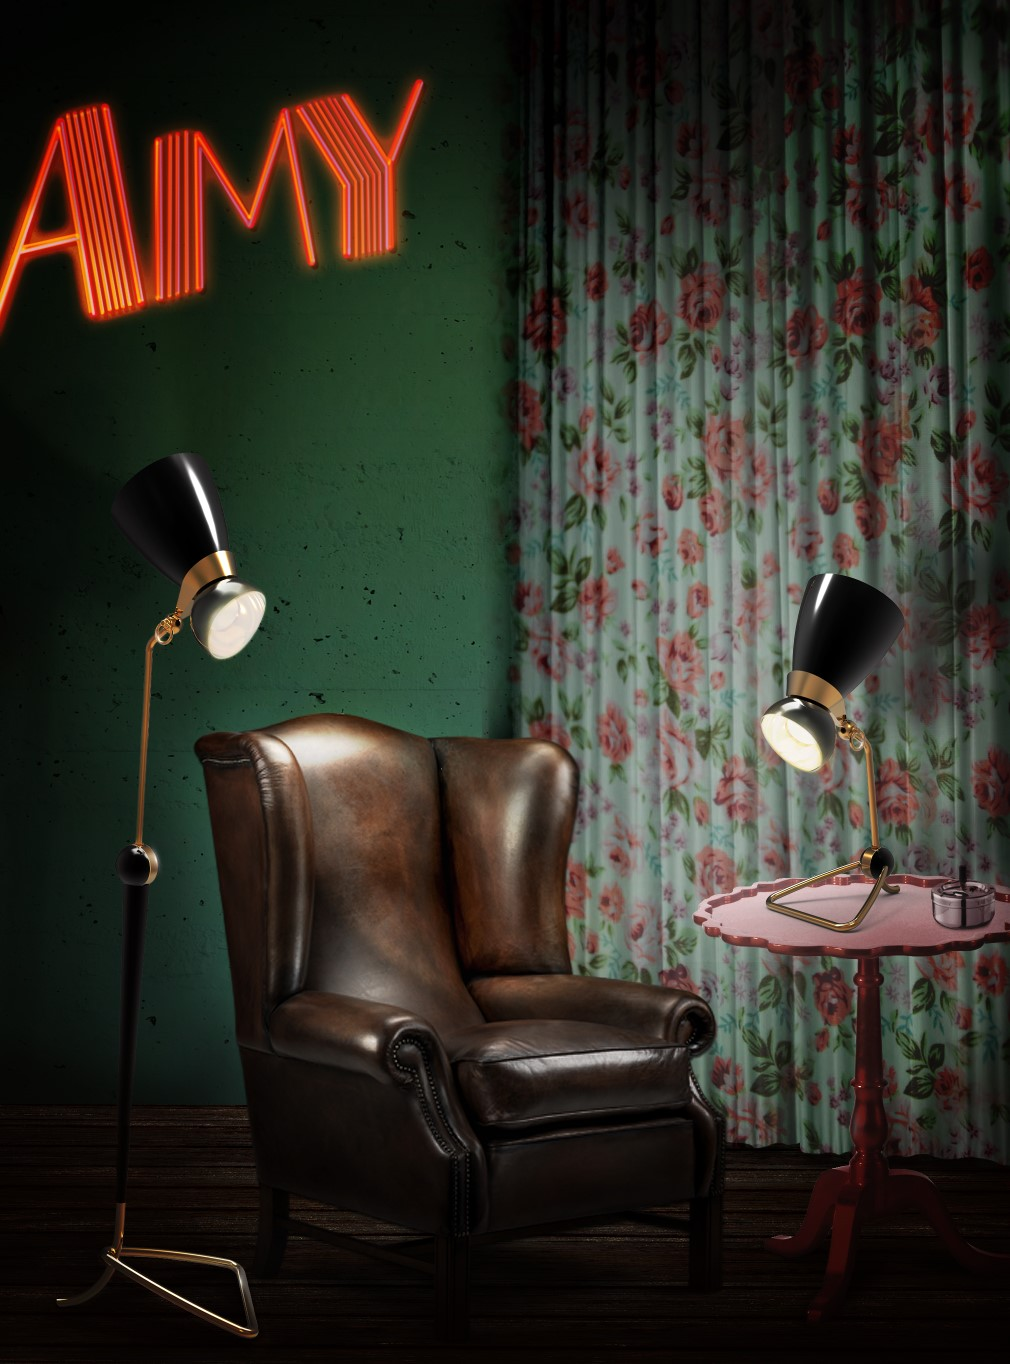 Amy Winehouse A Jazz icon transformed into a mid-century lighting design 31 mid-century lighting Amy Winehouse:Jazz Icon Transformed Into Mid-Century Lighting Design Amy Winehouse A Jazz icon transformed into a mid century lighting design 31